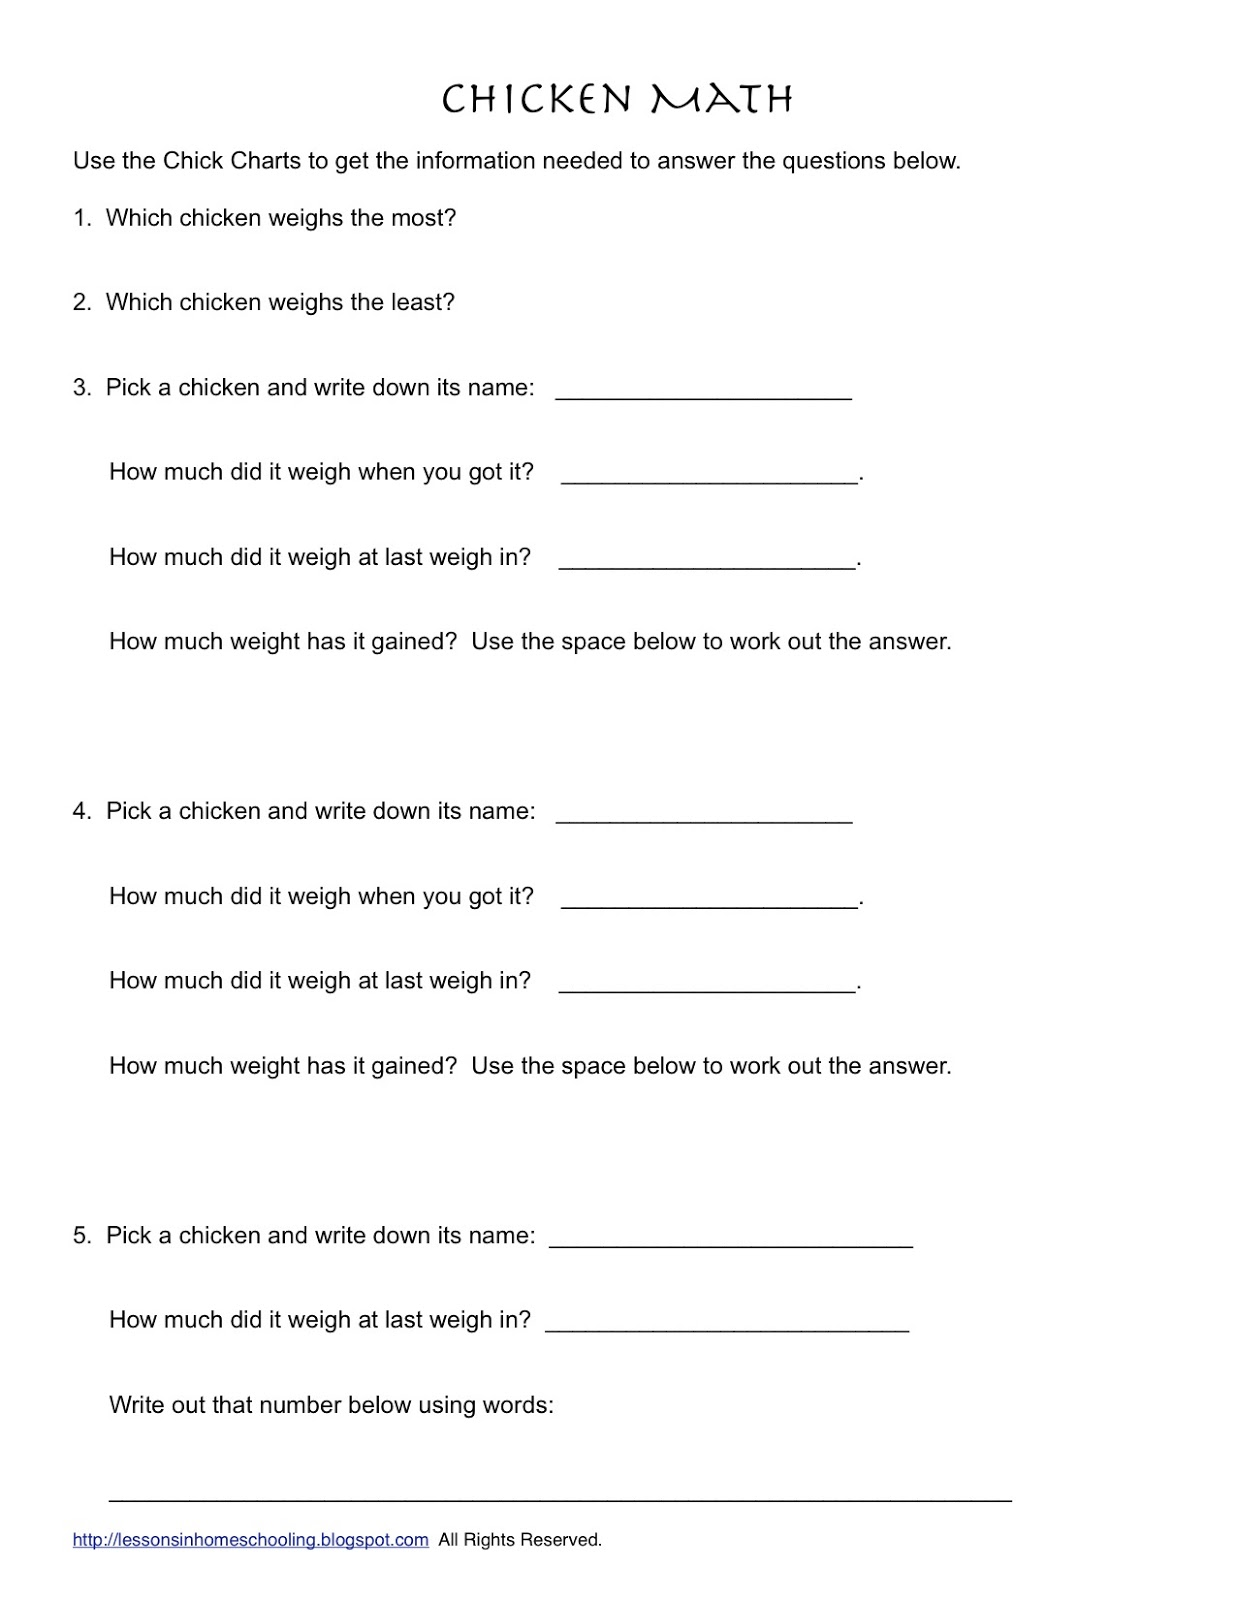 13 Best Images Of Cooking Lesson Worksheets